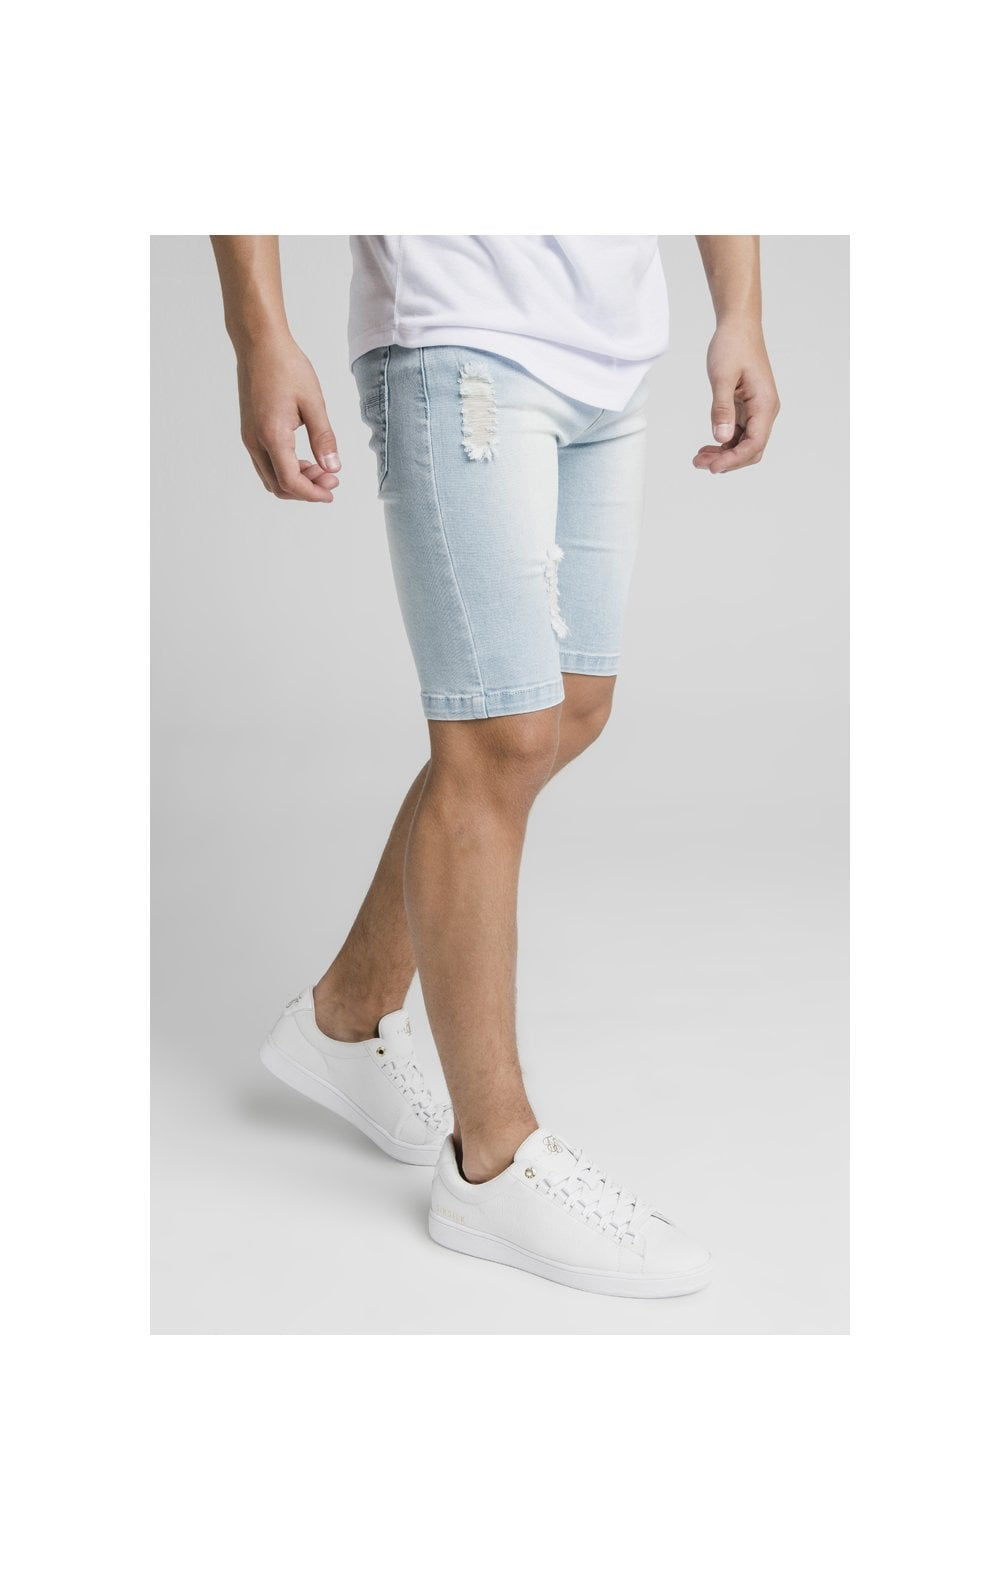 Illusive London Distressed Denim Shorts - Light Blue (1)